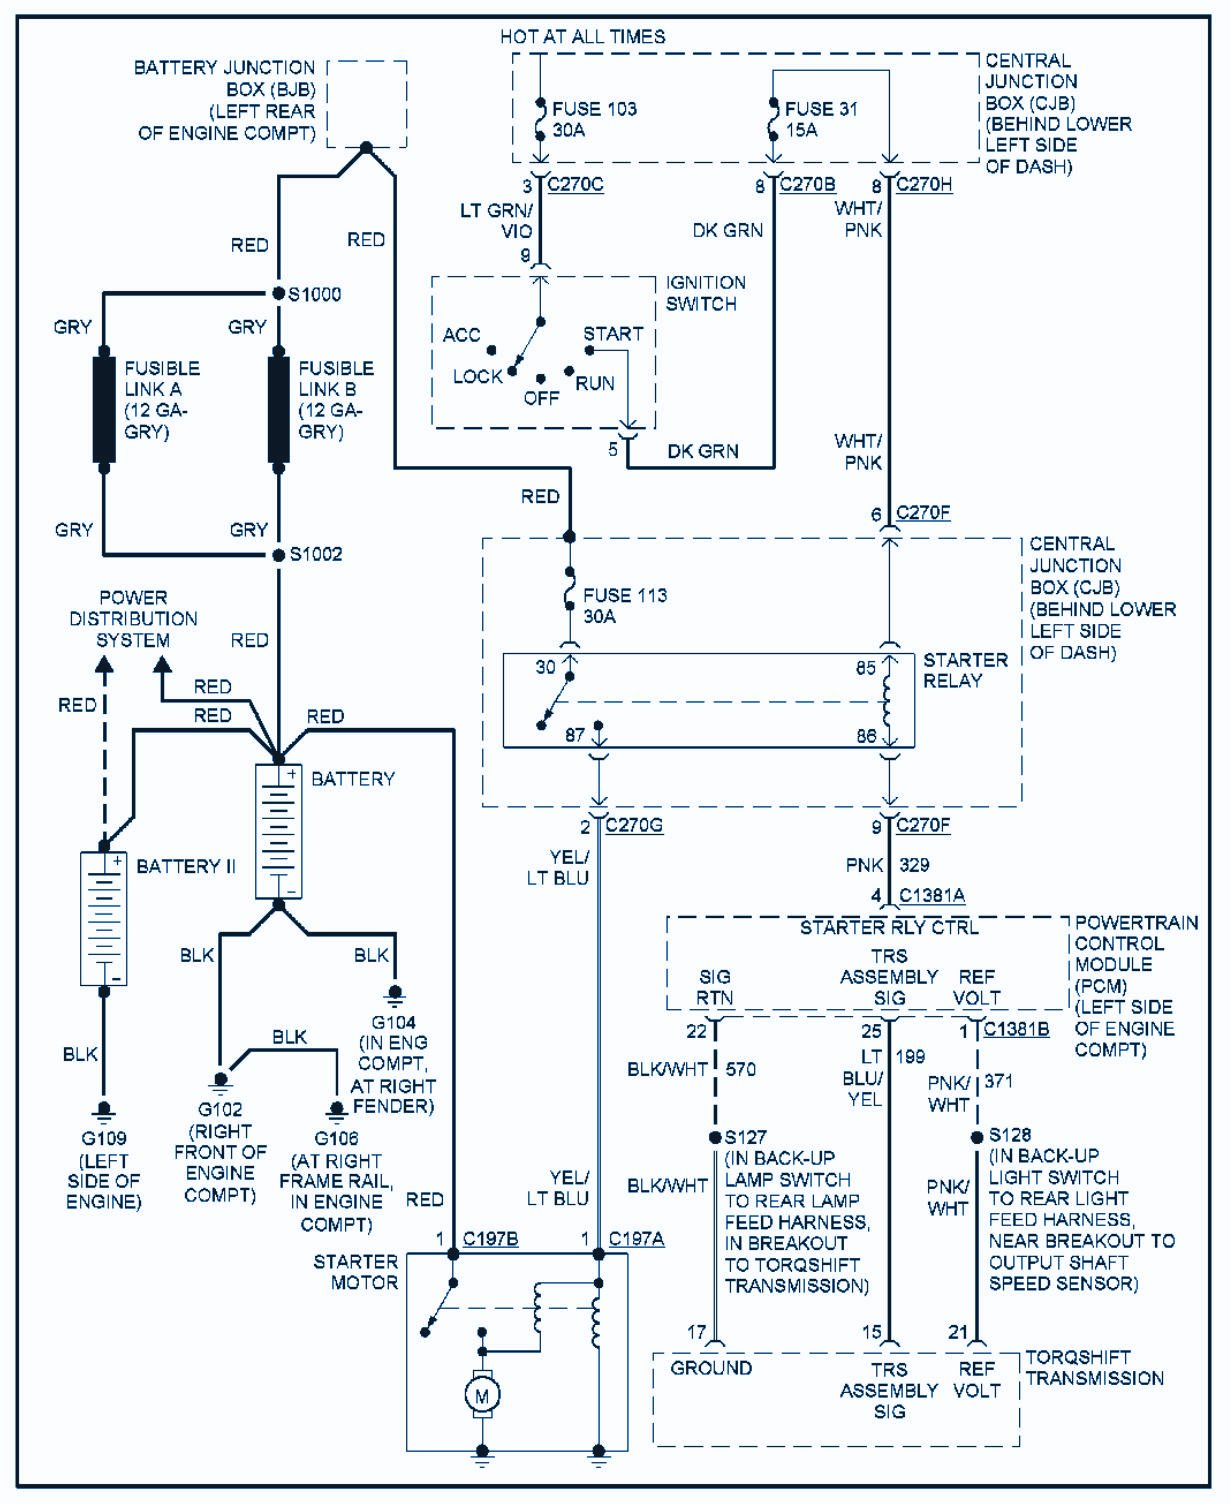 2011 Ford F550 Pto Wiring Diagram John Deere 6400 Diagramrhcleanprosperity